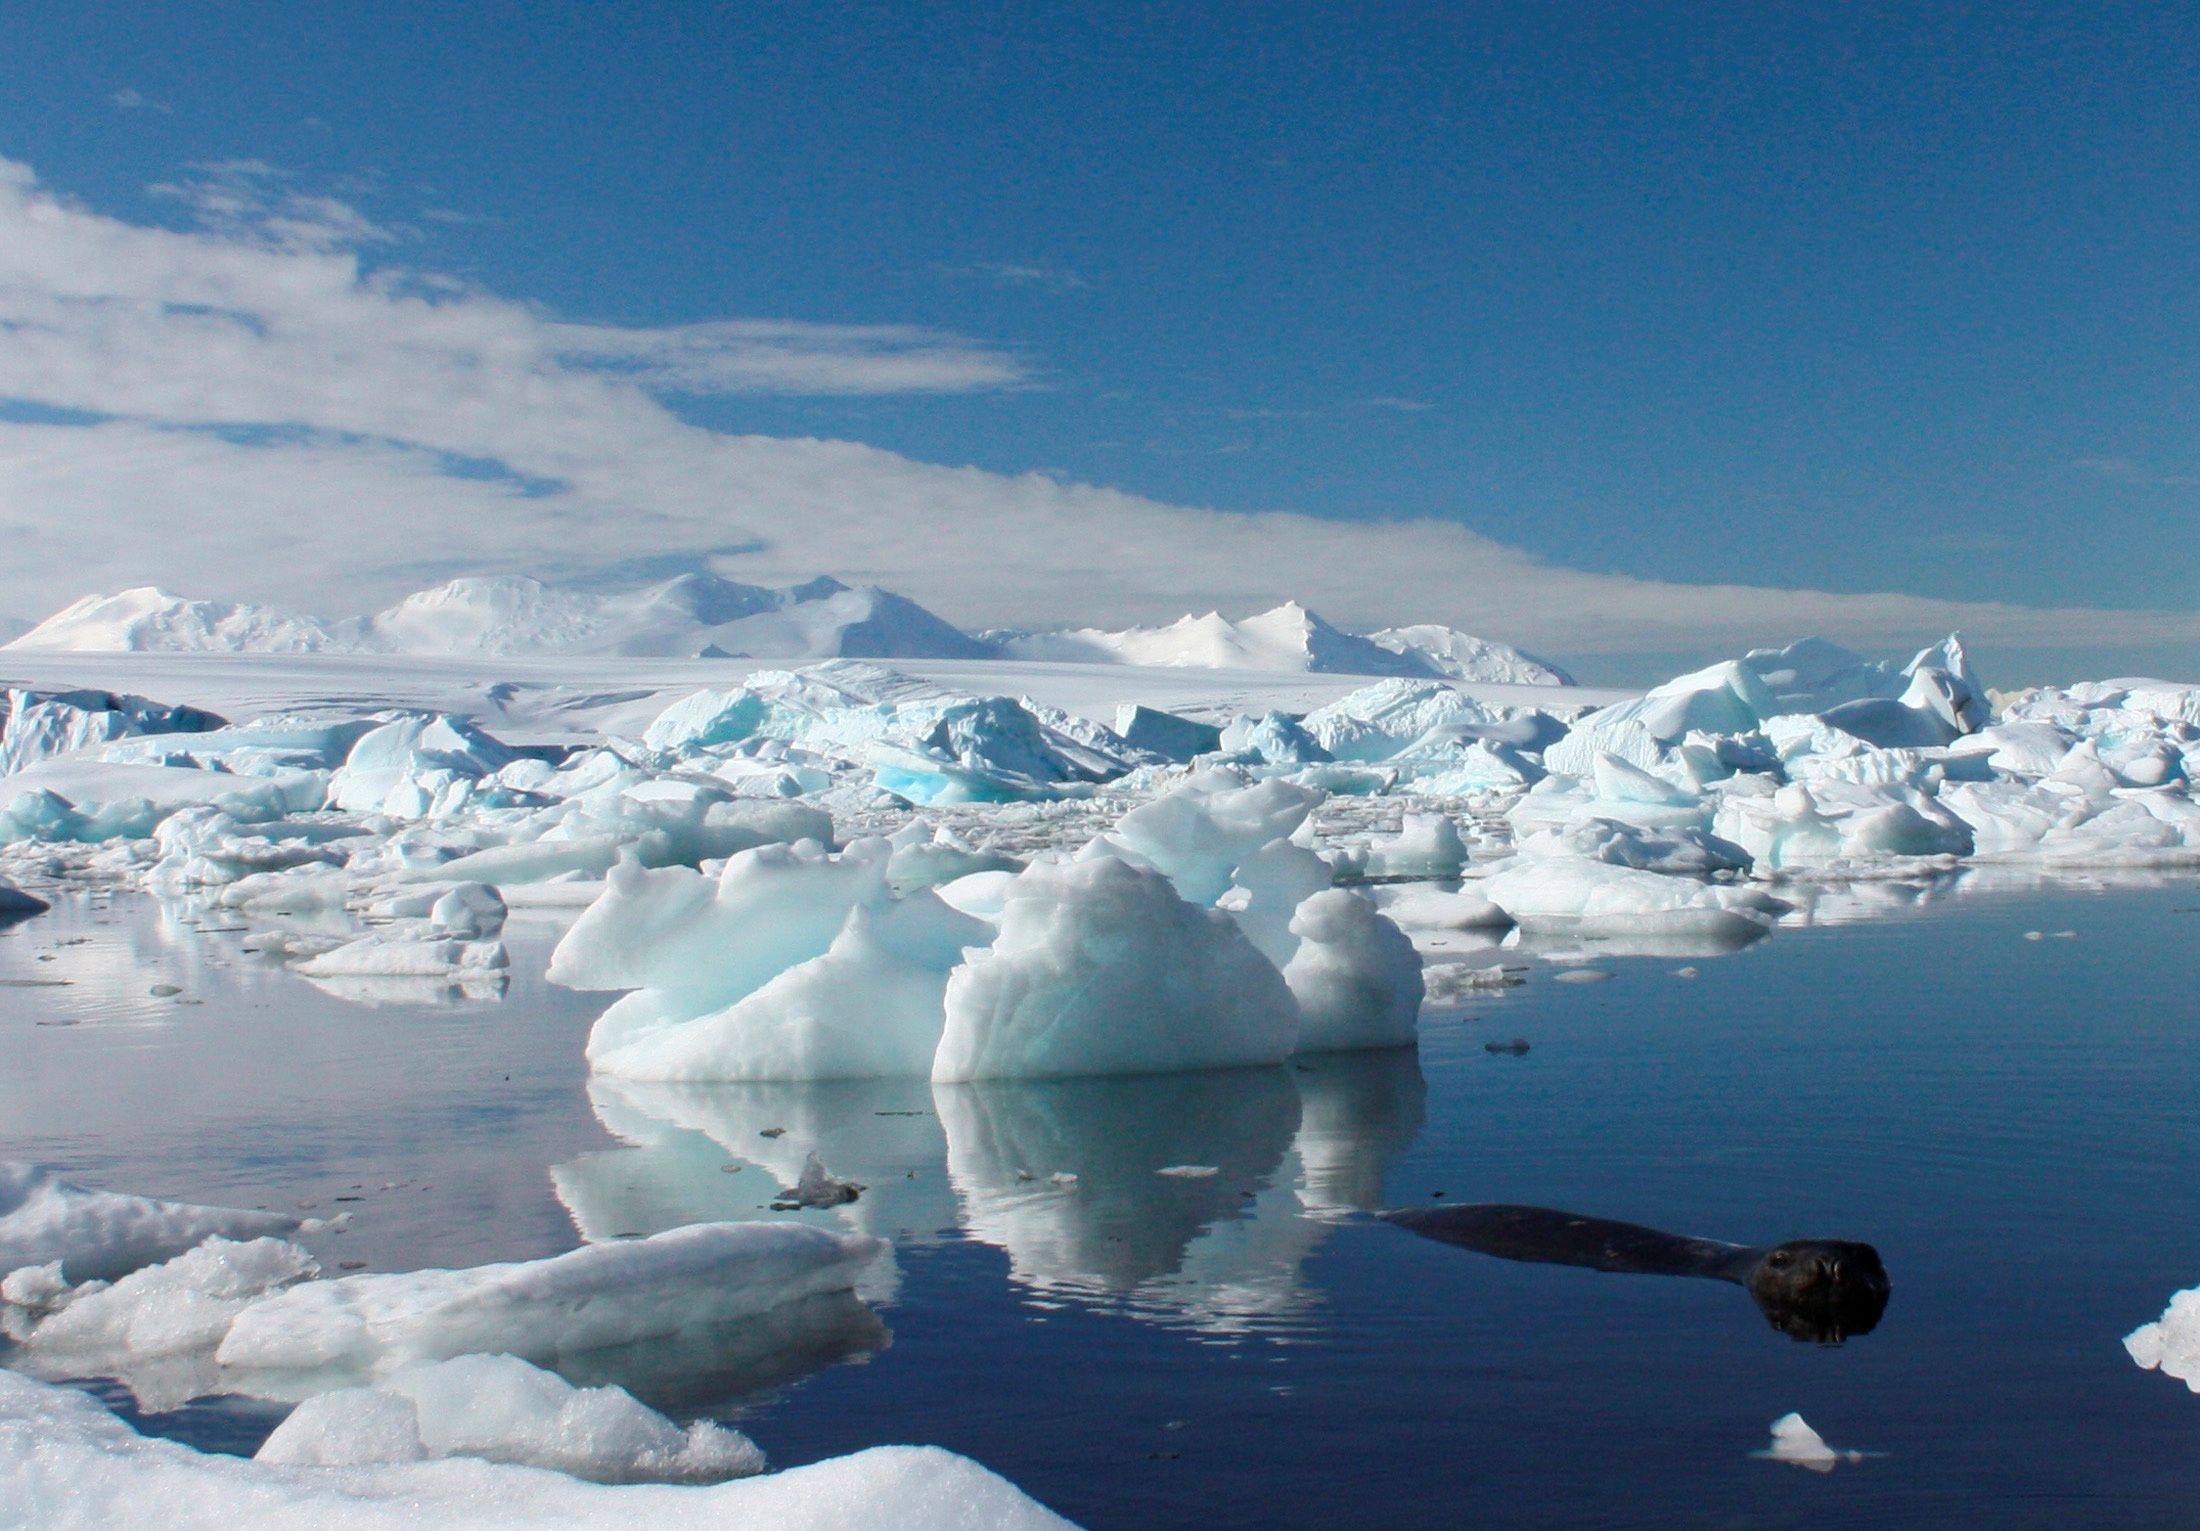 Why Moving Icebergs From Antarctica to Dubai to Harvest ...